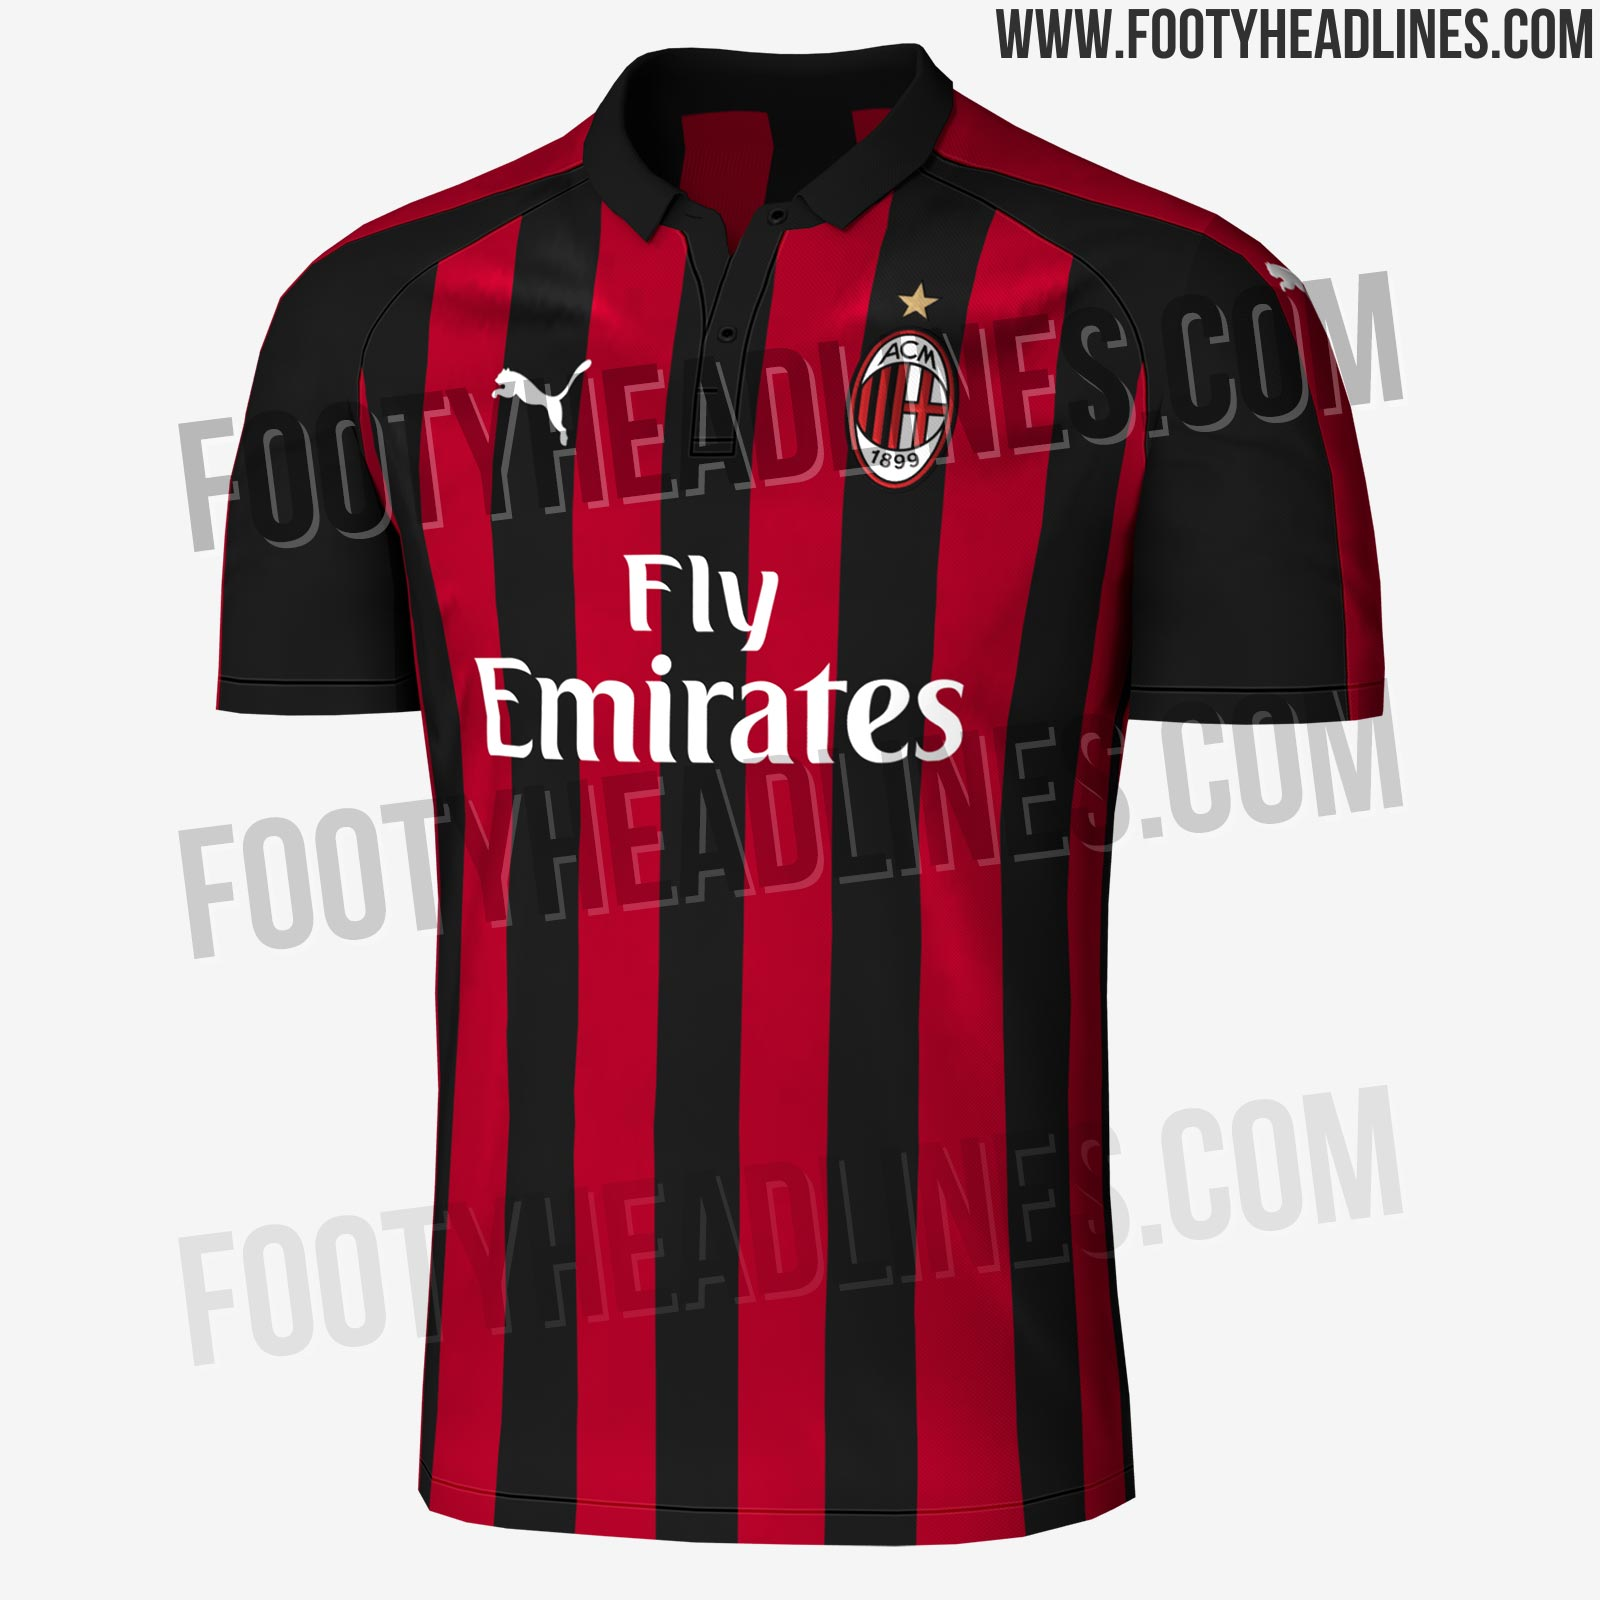 puma-milan-18-19-home-kit-2.jpg